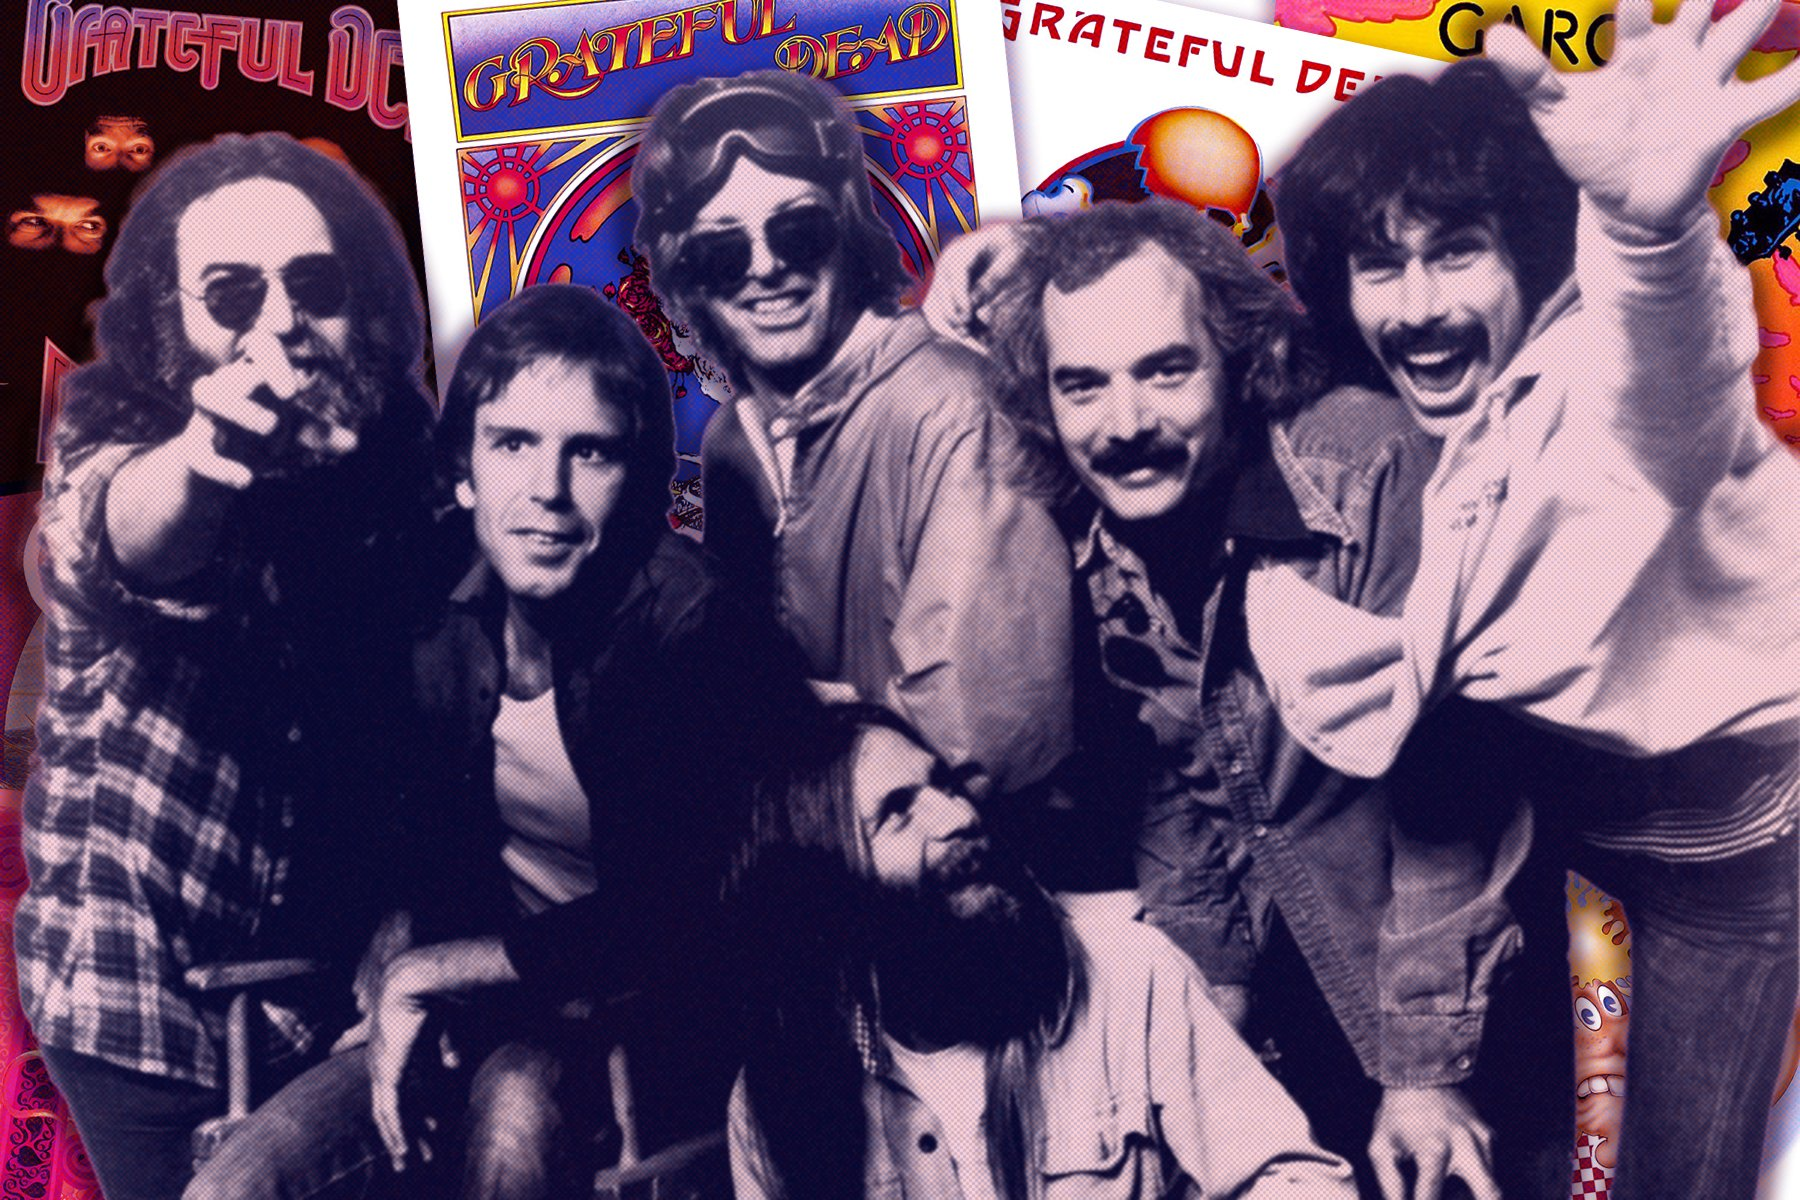 Grateful Dead Albums: The Best of the Rest